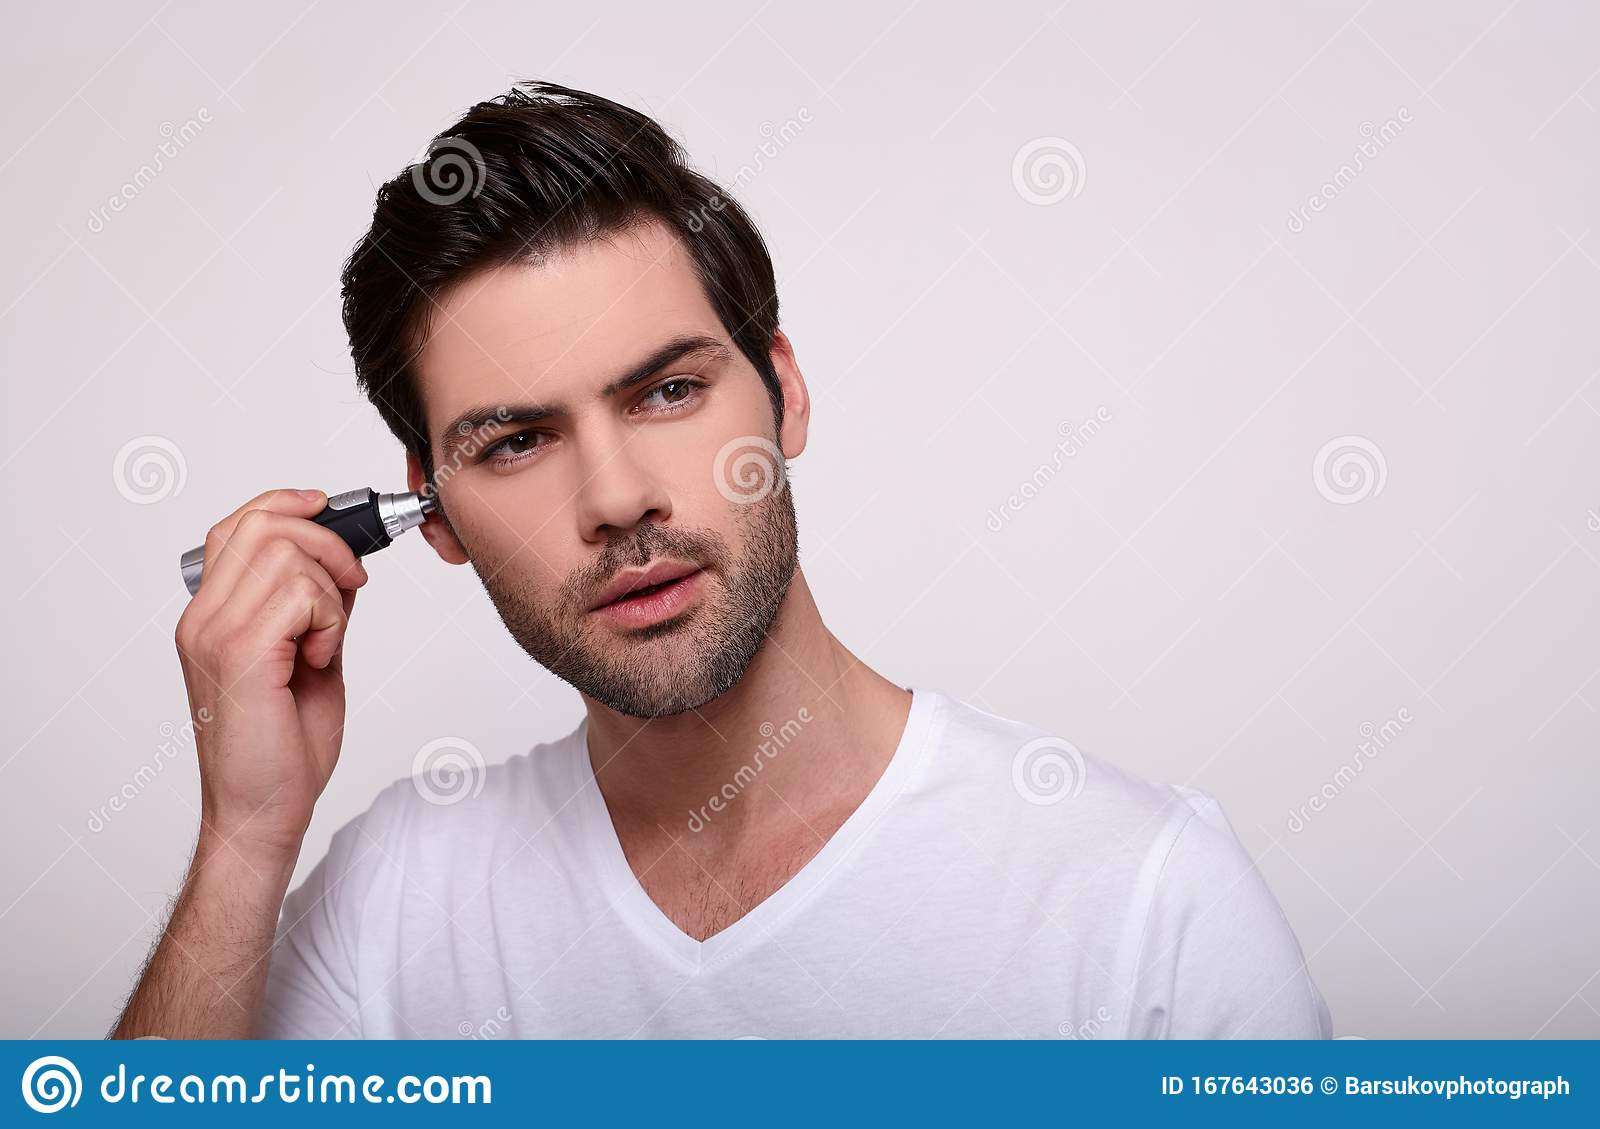 A Young White Guy Removes The Hair In His Ealone Slummer Stock Photo Image Of Caucasian Portrait 167643036